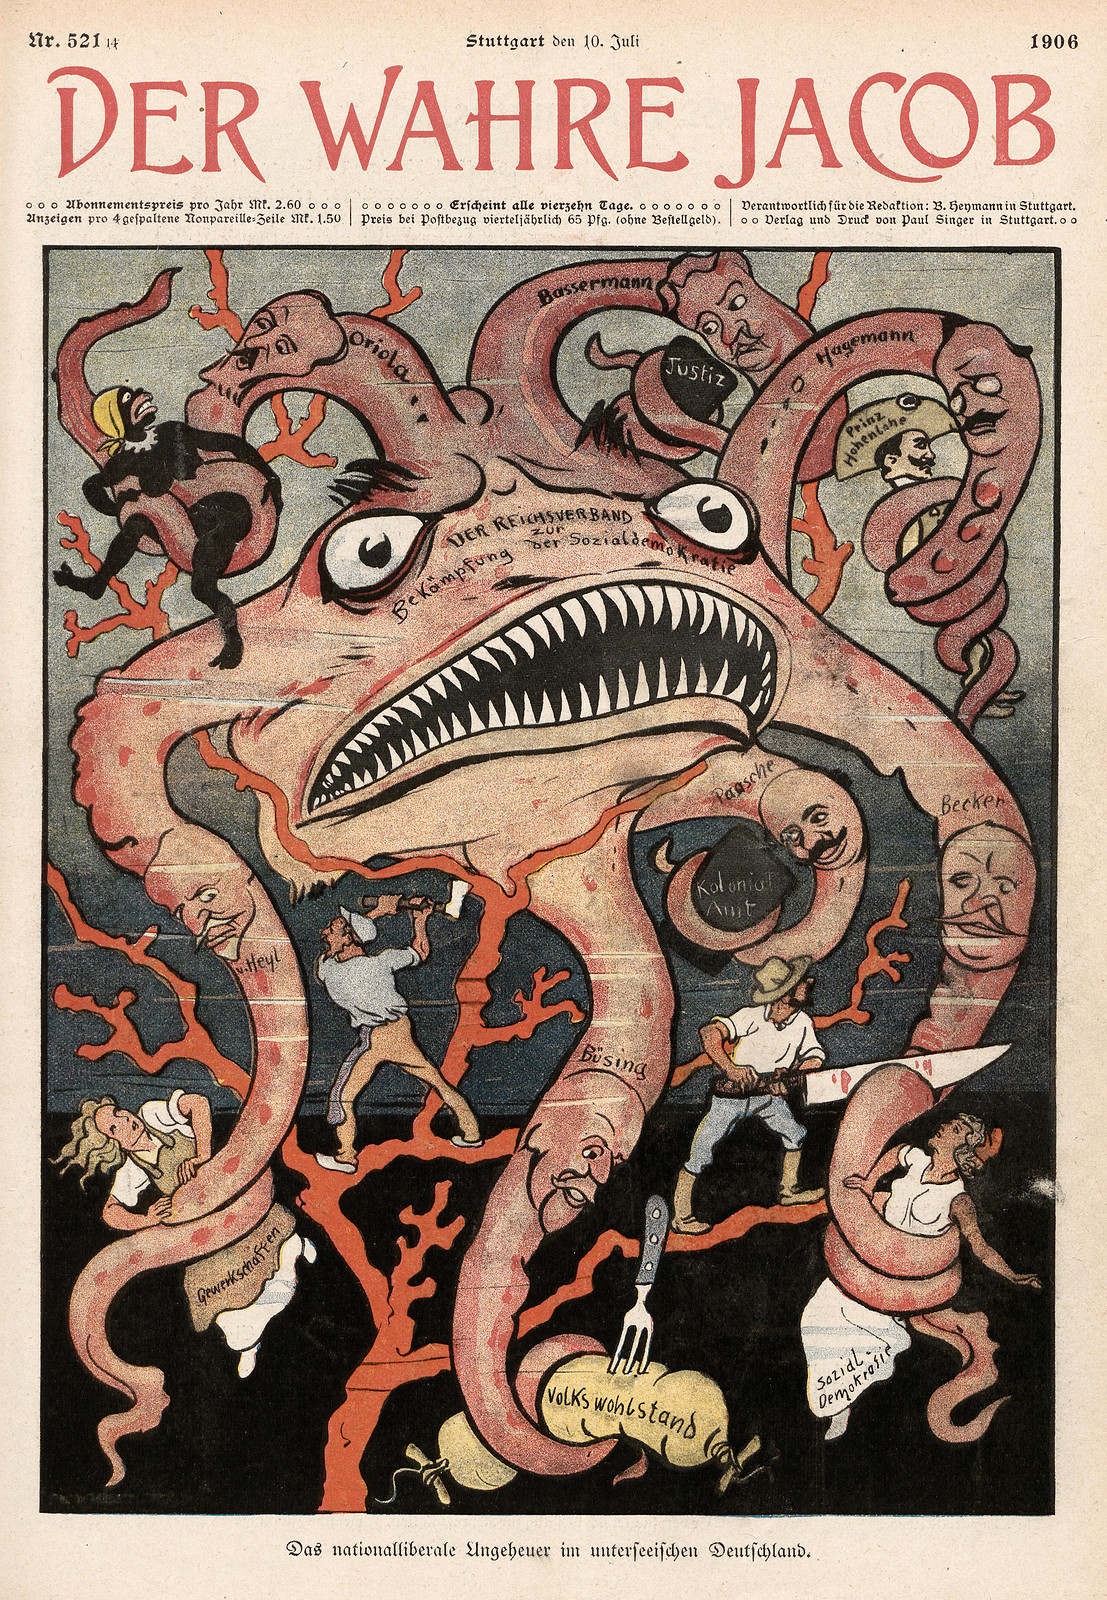 Unsigned - The national liberal monster in submarine Germany, 1906